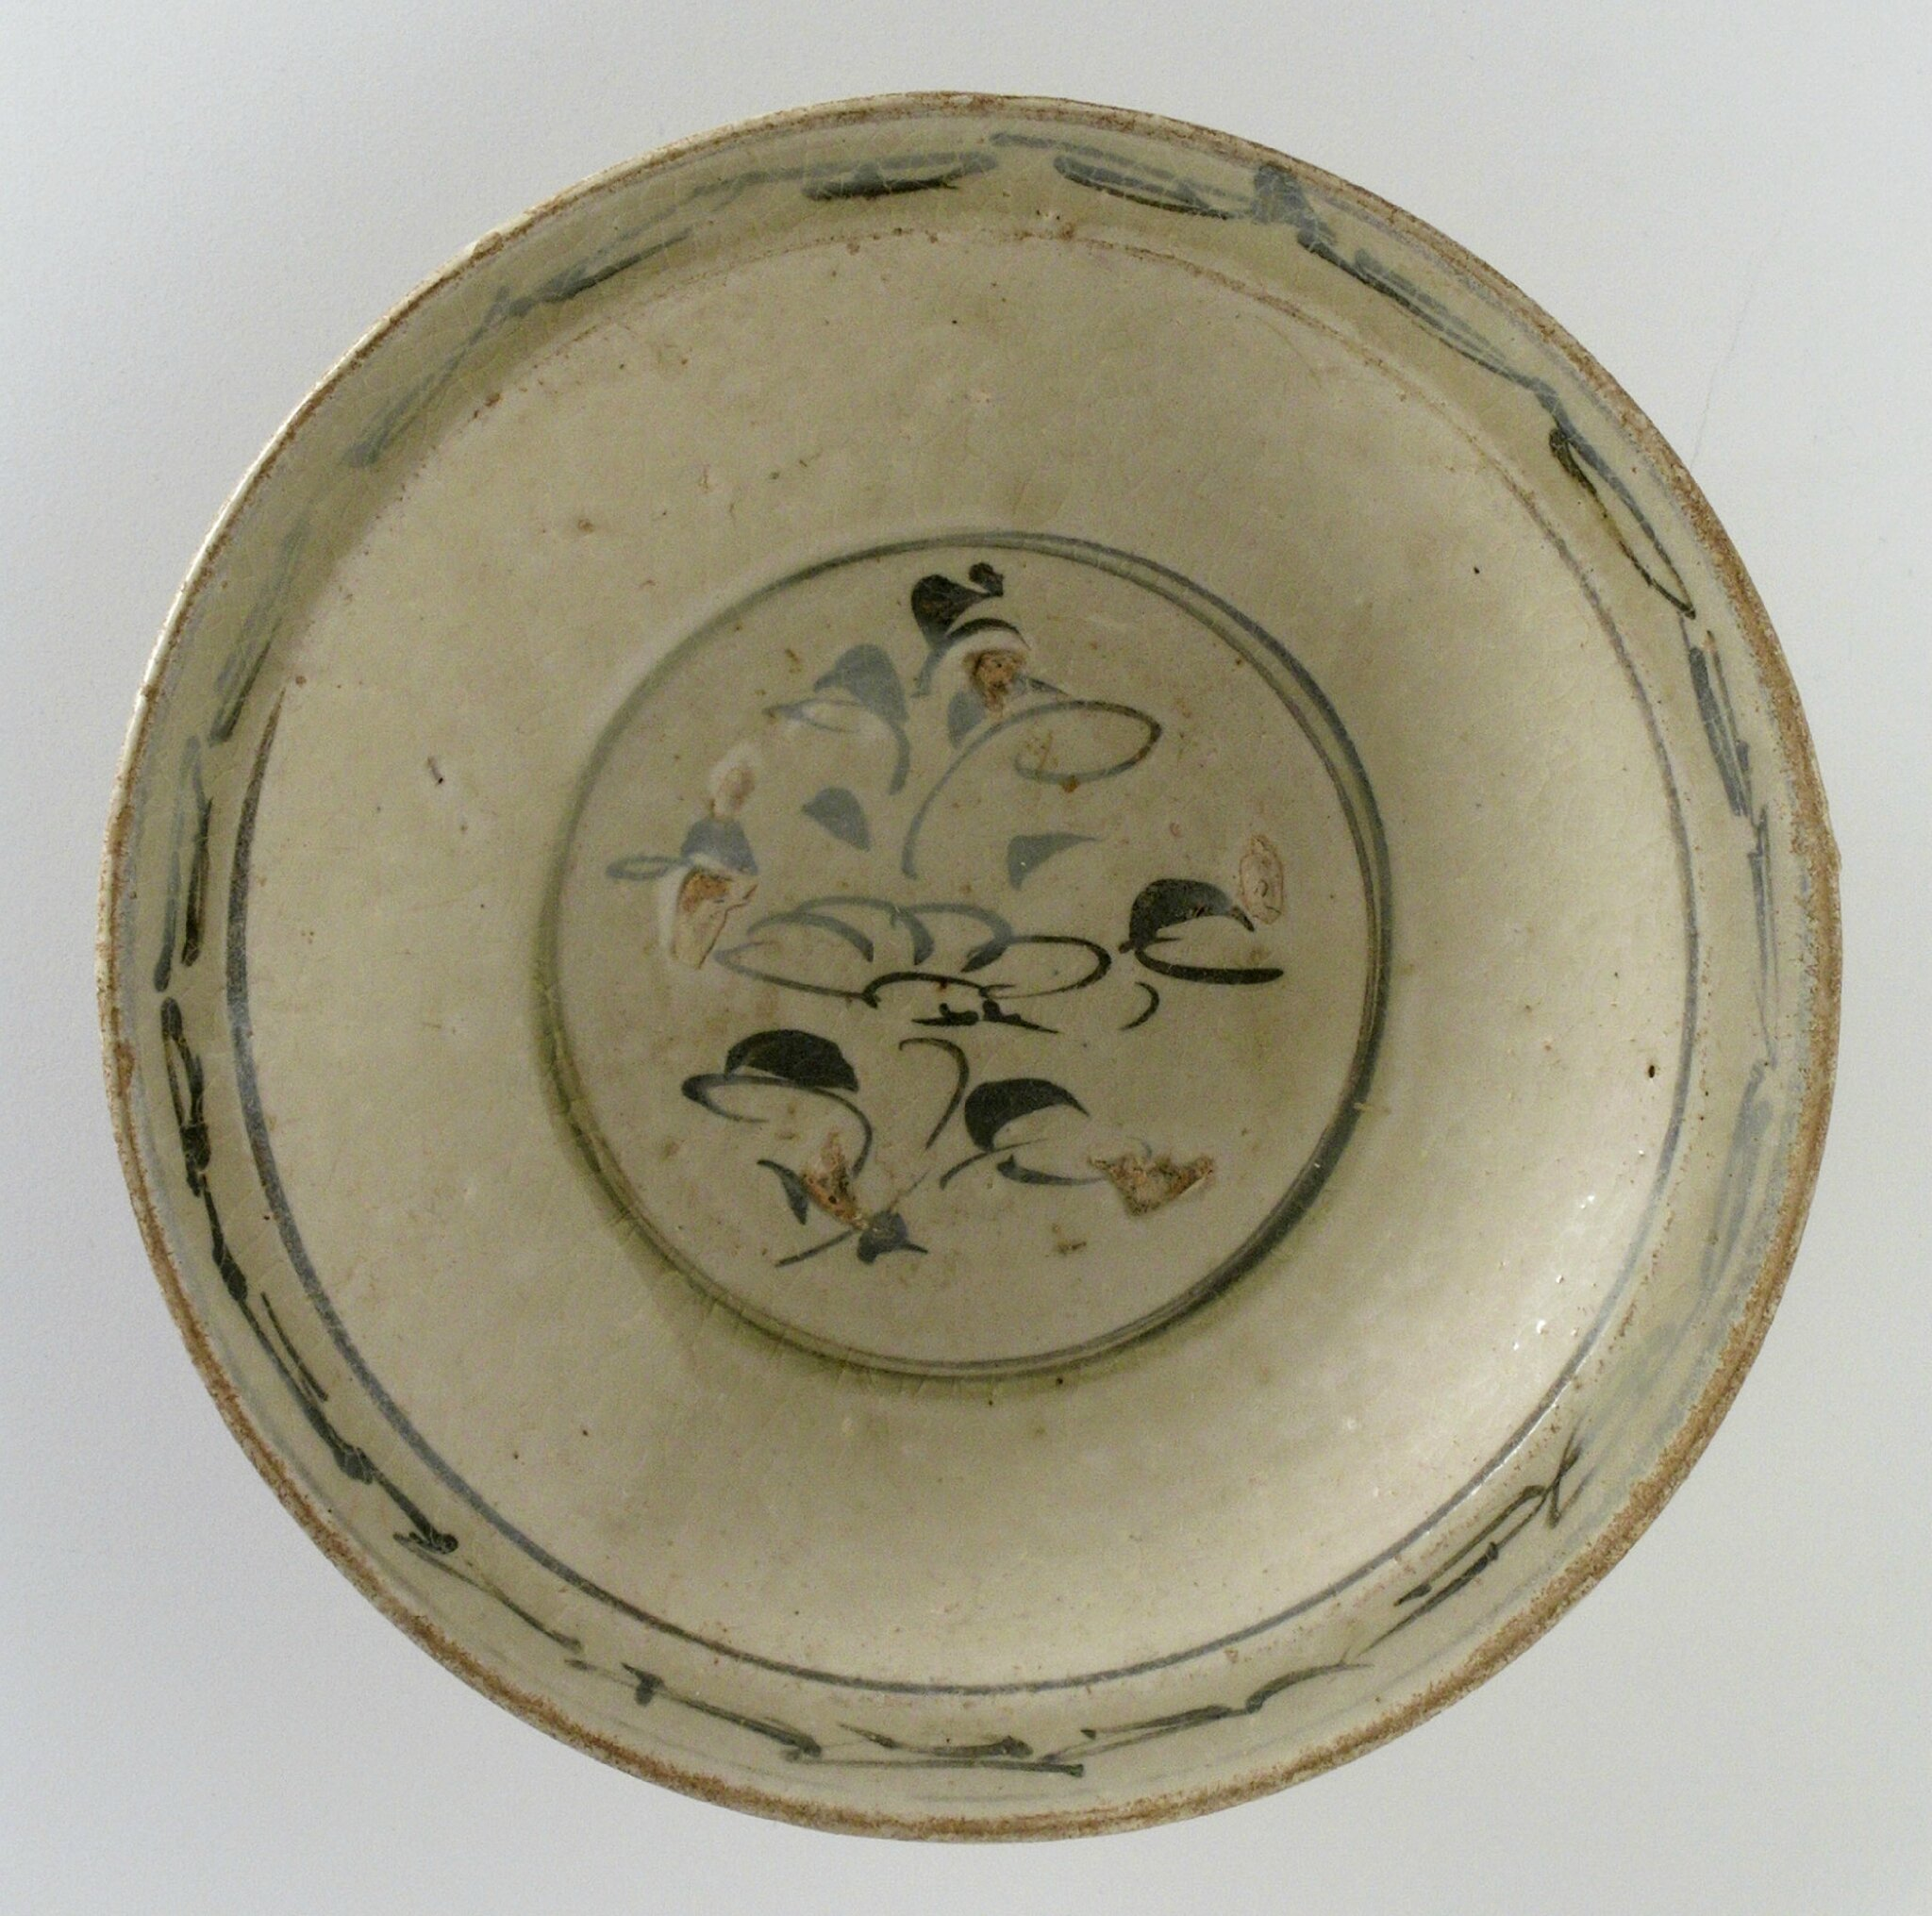 Dish with Cursive Floral Spray, Vietnam, late 14th century